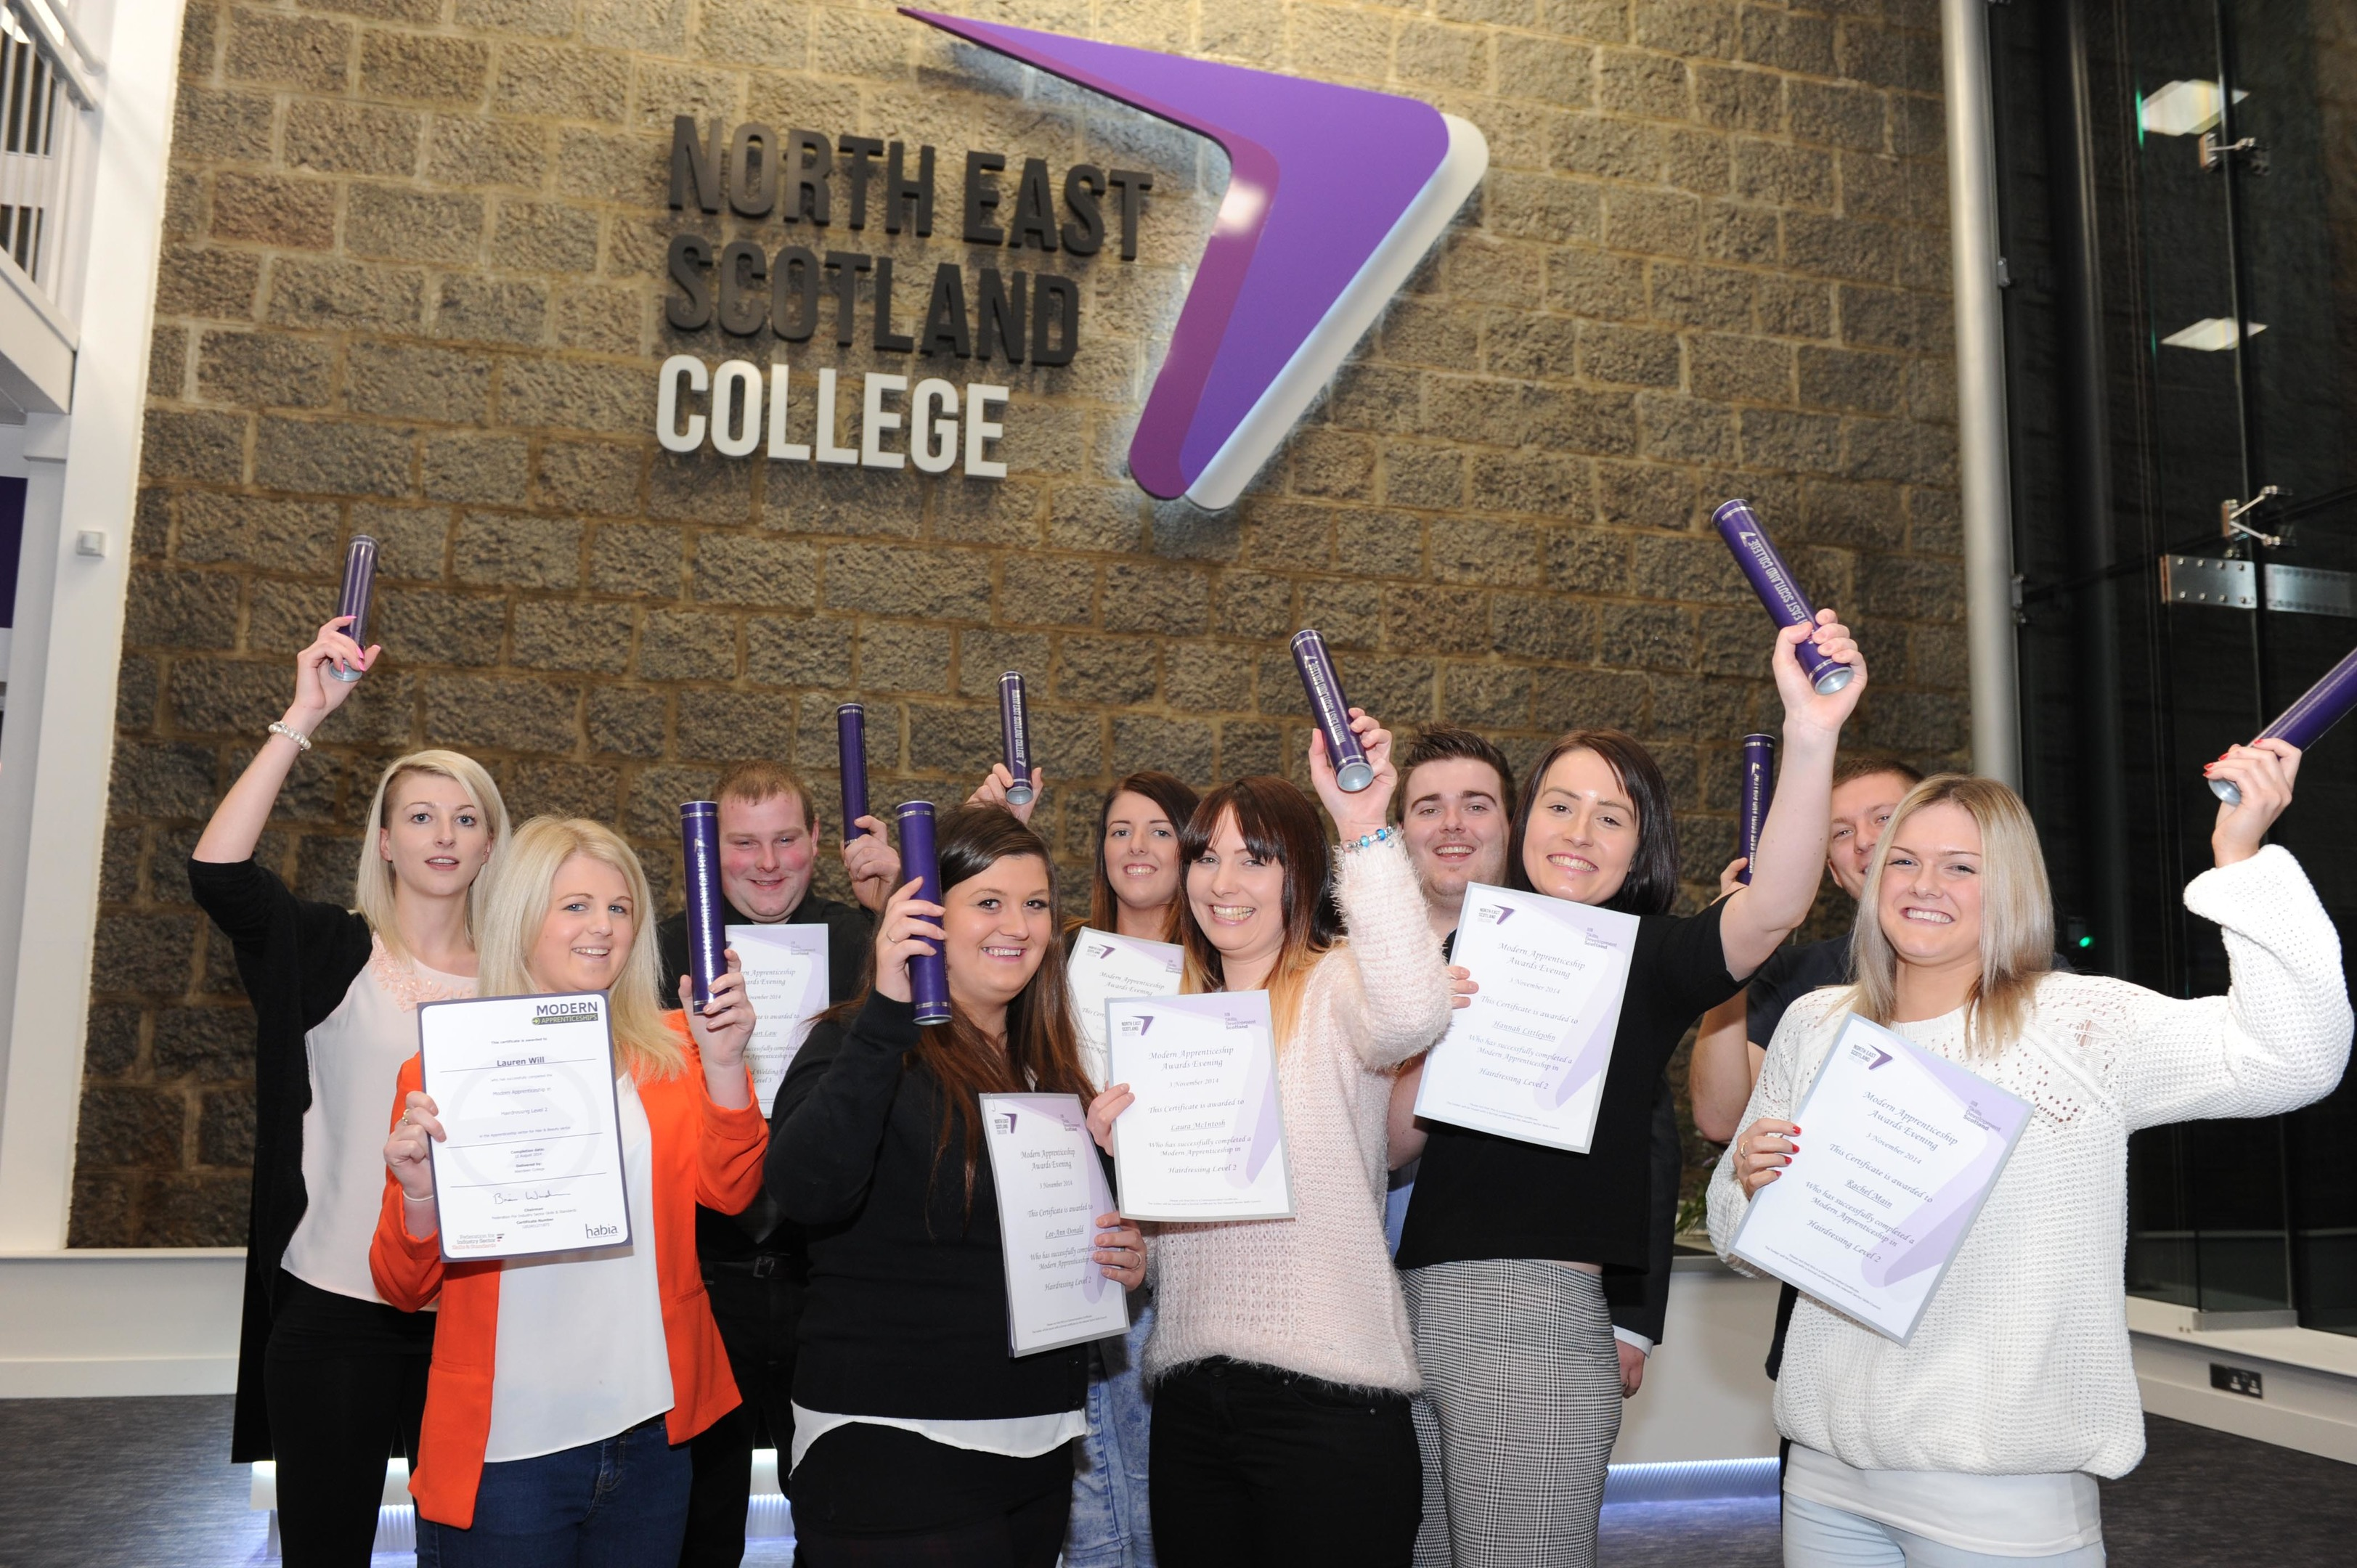 Apprentices celebrate north east scotland college for Aberdeen college beauty salon